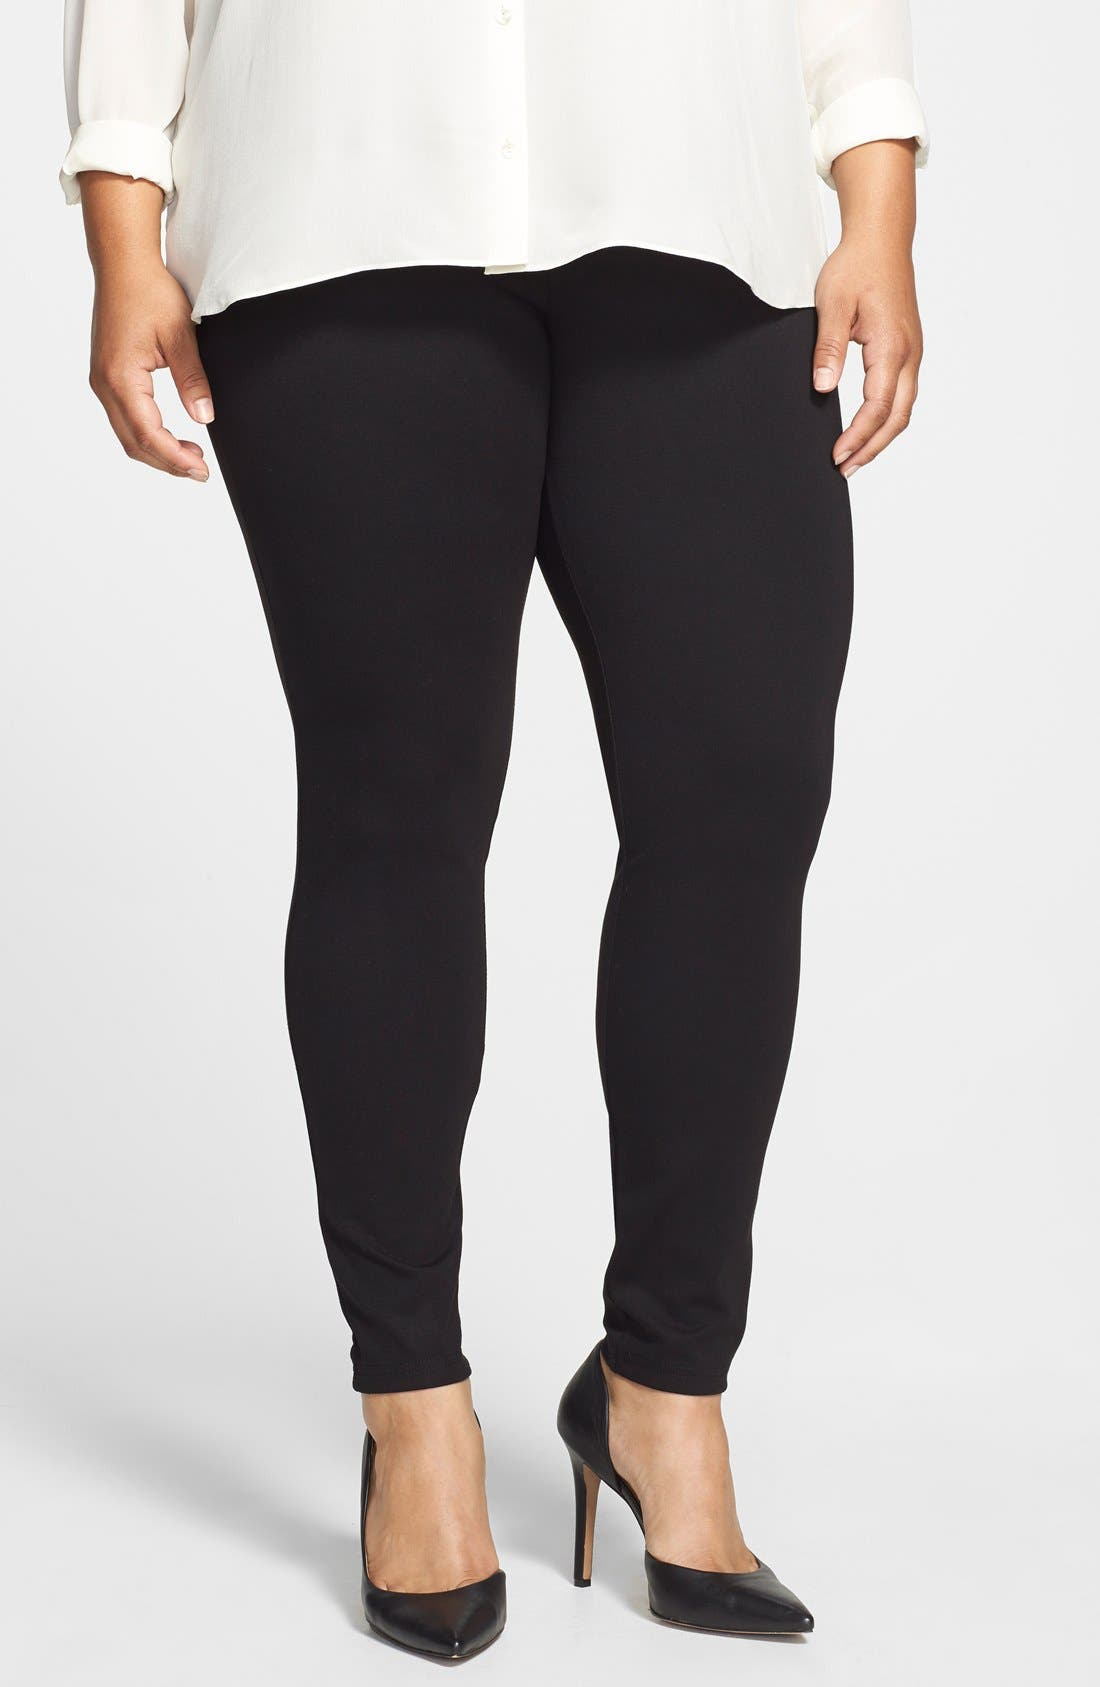 Alternate Image 1 Selected - Hue Ponte Knit Leggings (Plus Size)